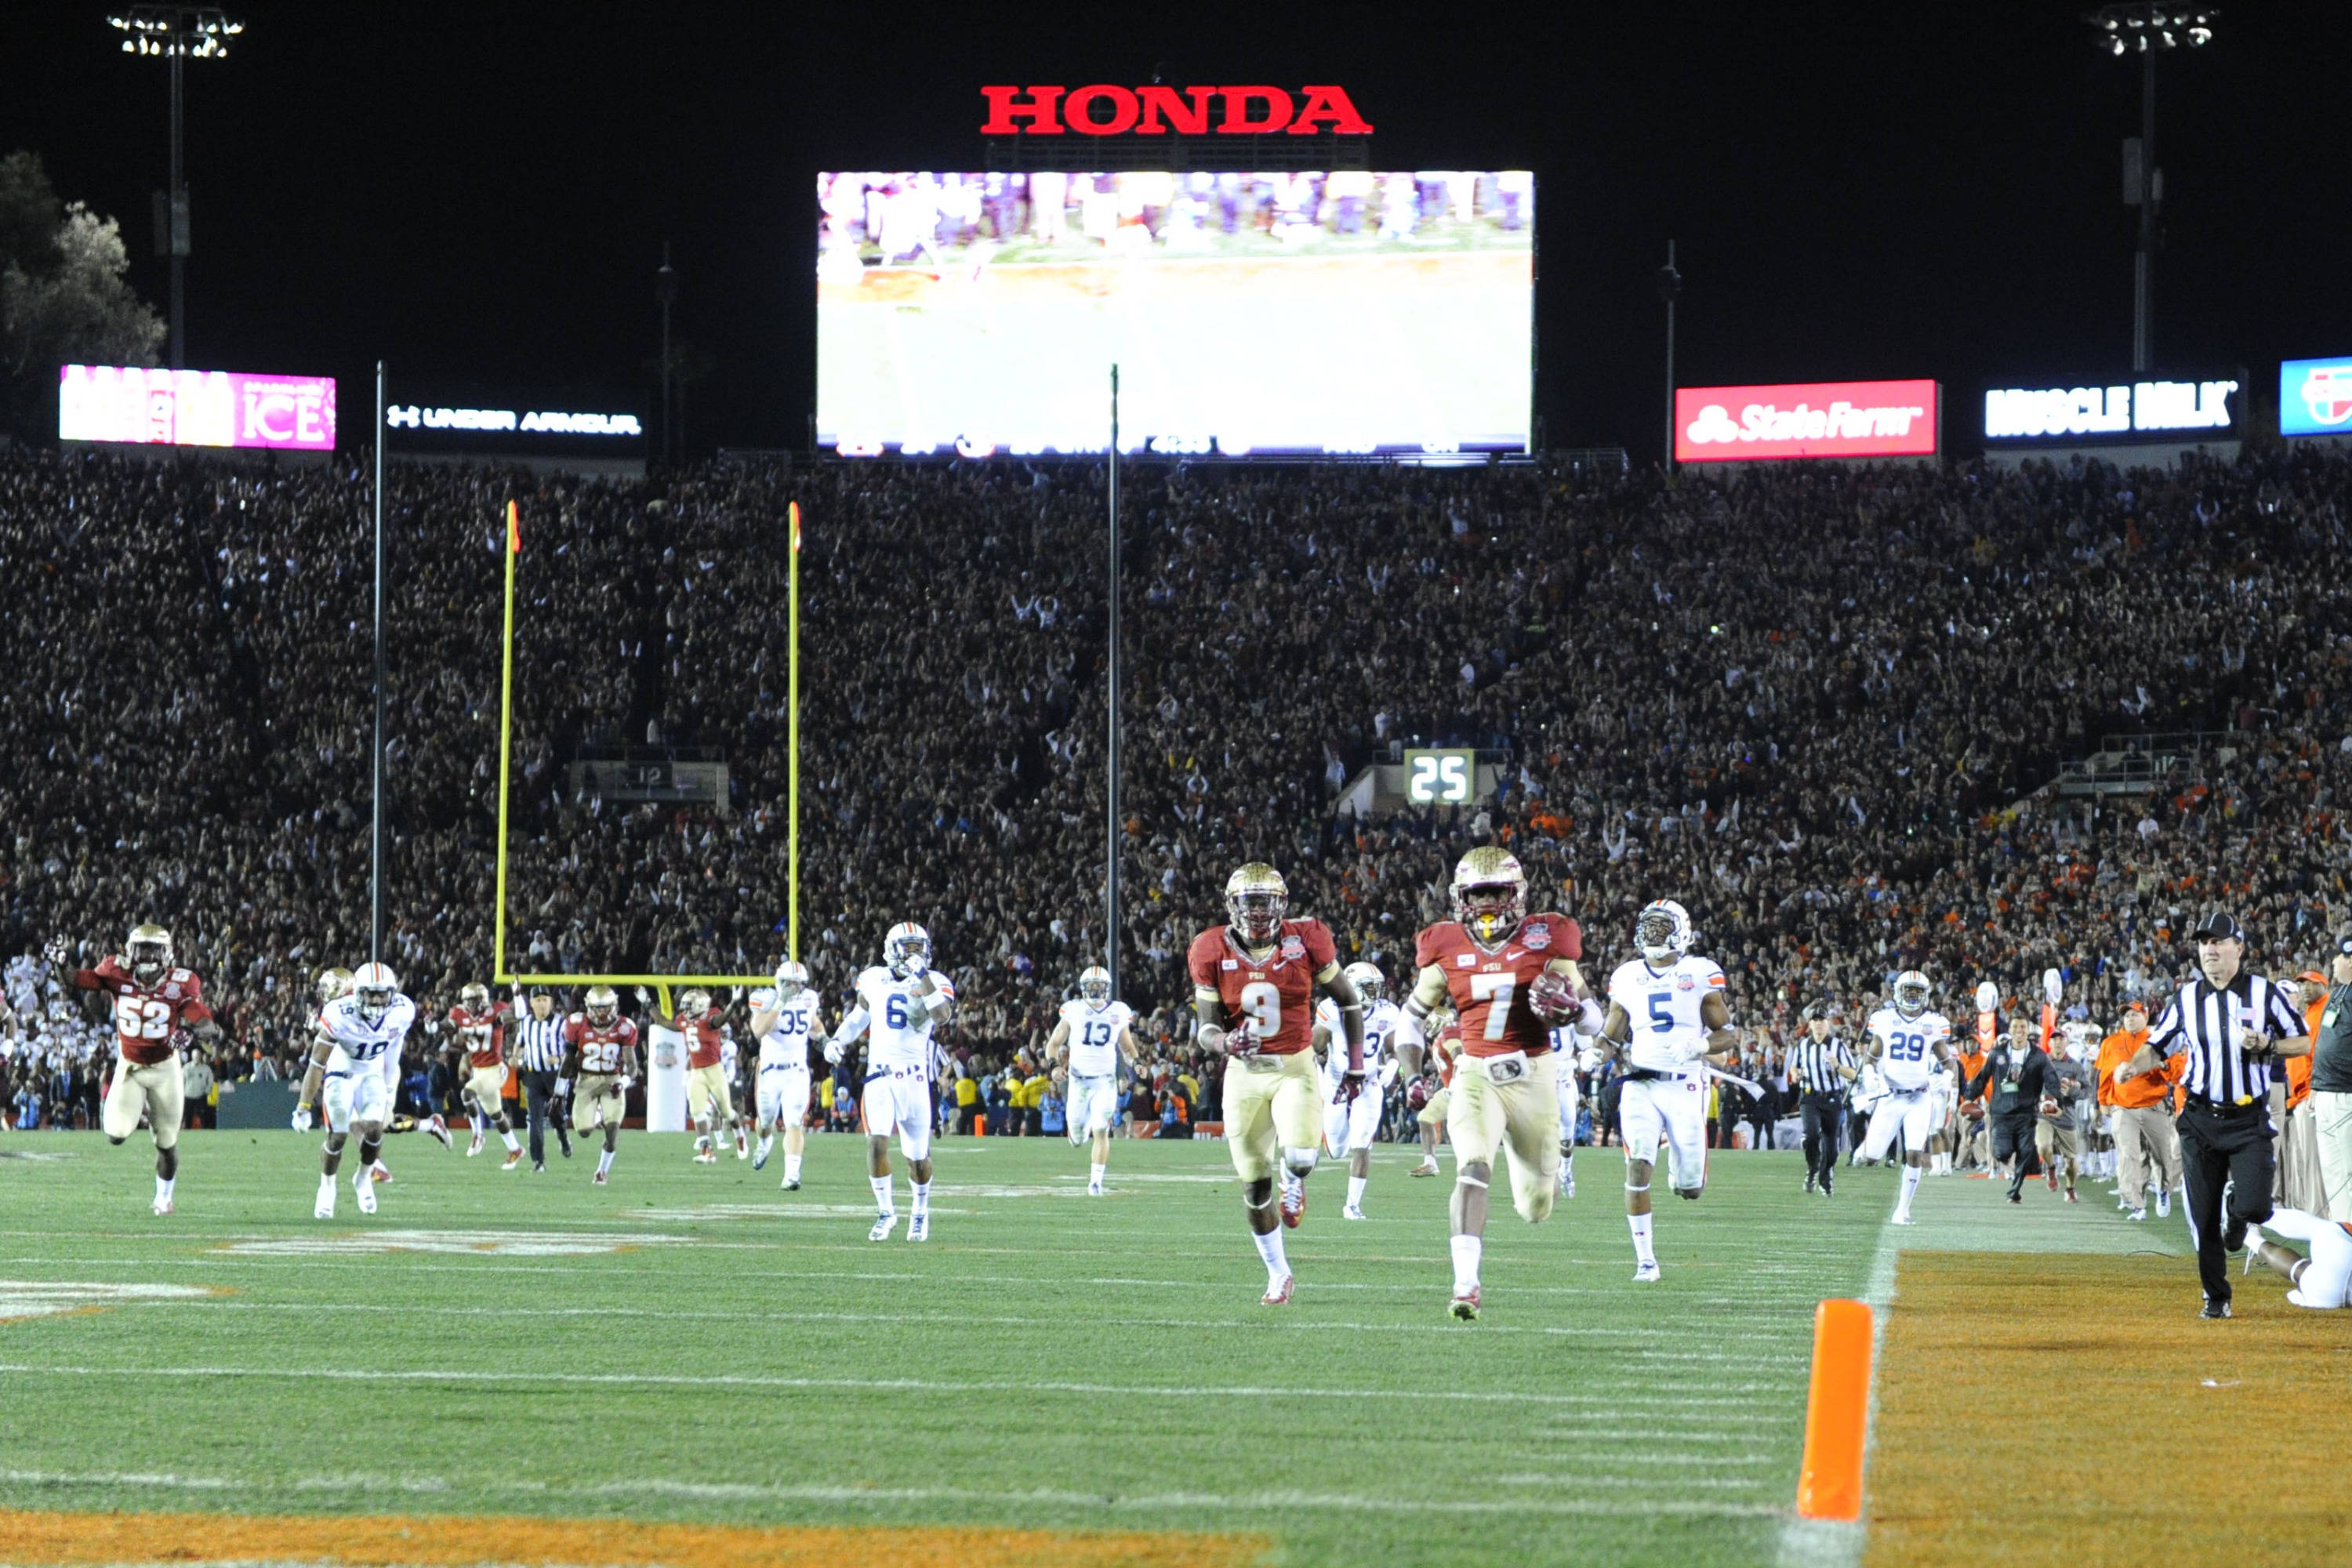 Jan 6, 2014; Pasadena, CA, USA; Florida State Seminoles wide receiver Kermit Whitfield (7) scores a touchdown on a  kick return during the second half of the 2014 BCS National Championship game against the Auburn Tigers at the Rose Bowl.  Mandatory Credit: Kirby Lee-USA TODAY Sports